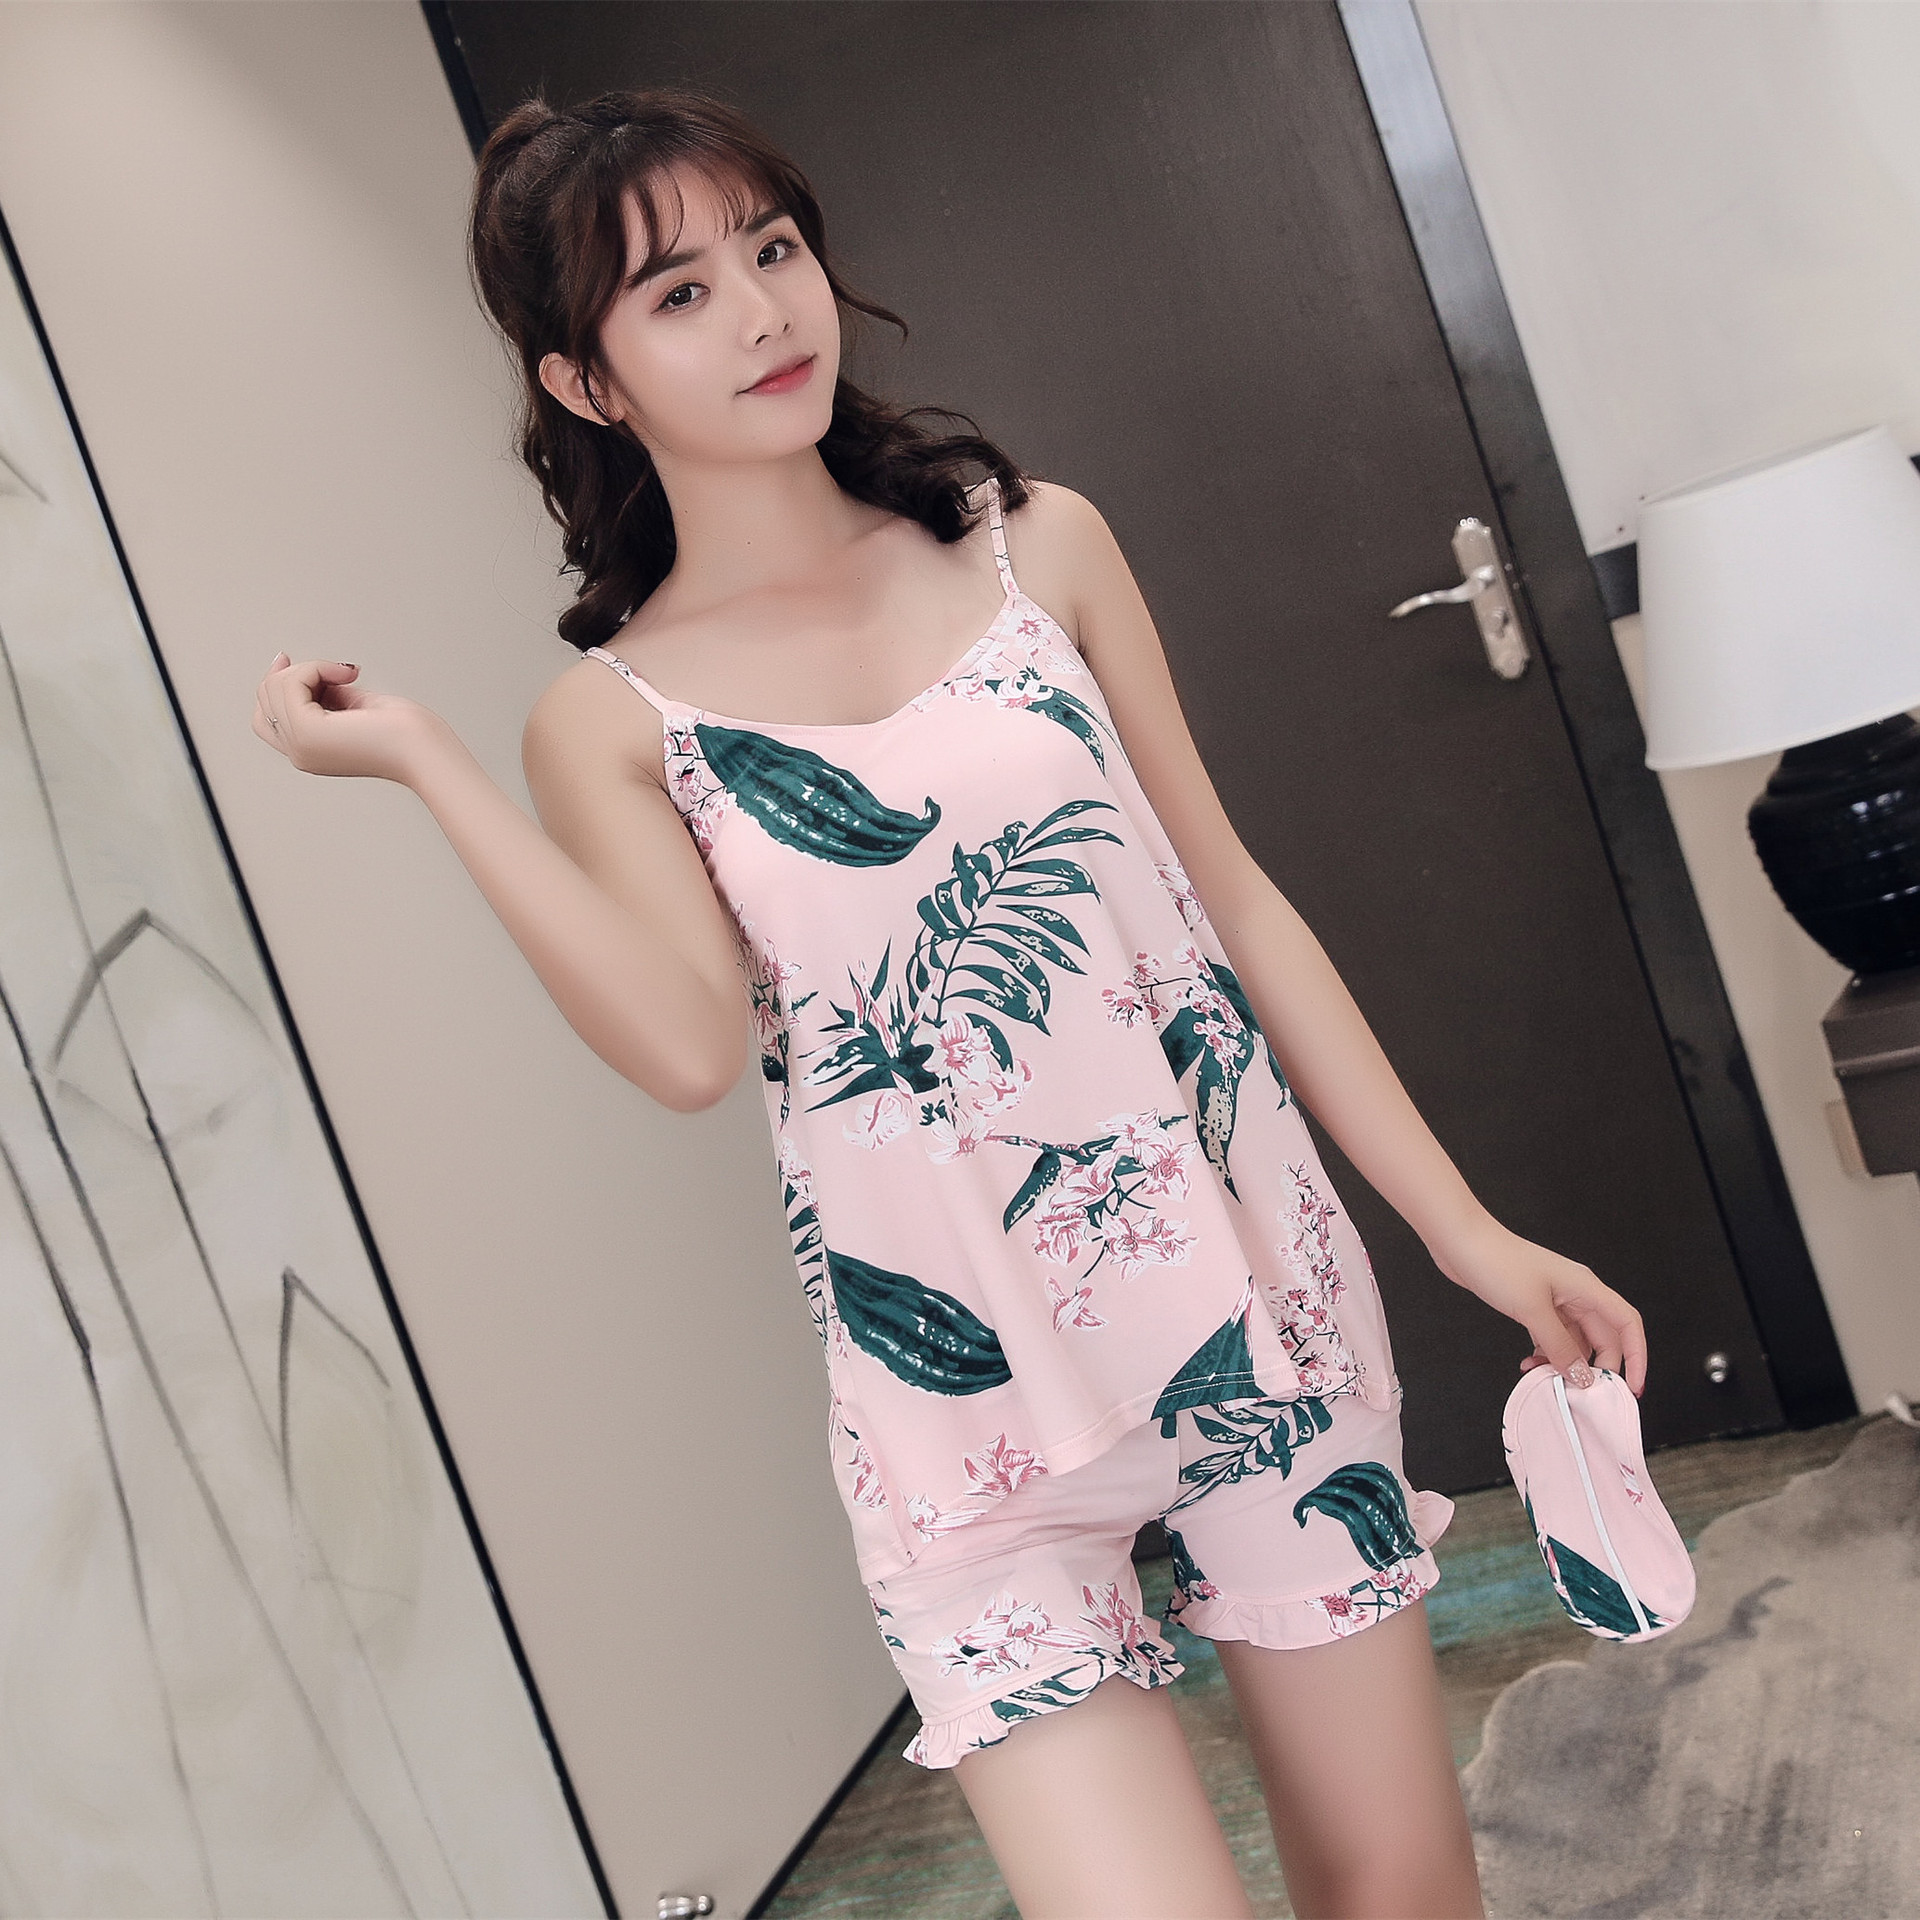 2020 Womens Pajamas Sets V-Neck Summer Sleeveless Cami Tops + Shorts 2 Pcs Pyjamas With Chest Pad Student Pajamas Sets Pj Set